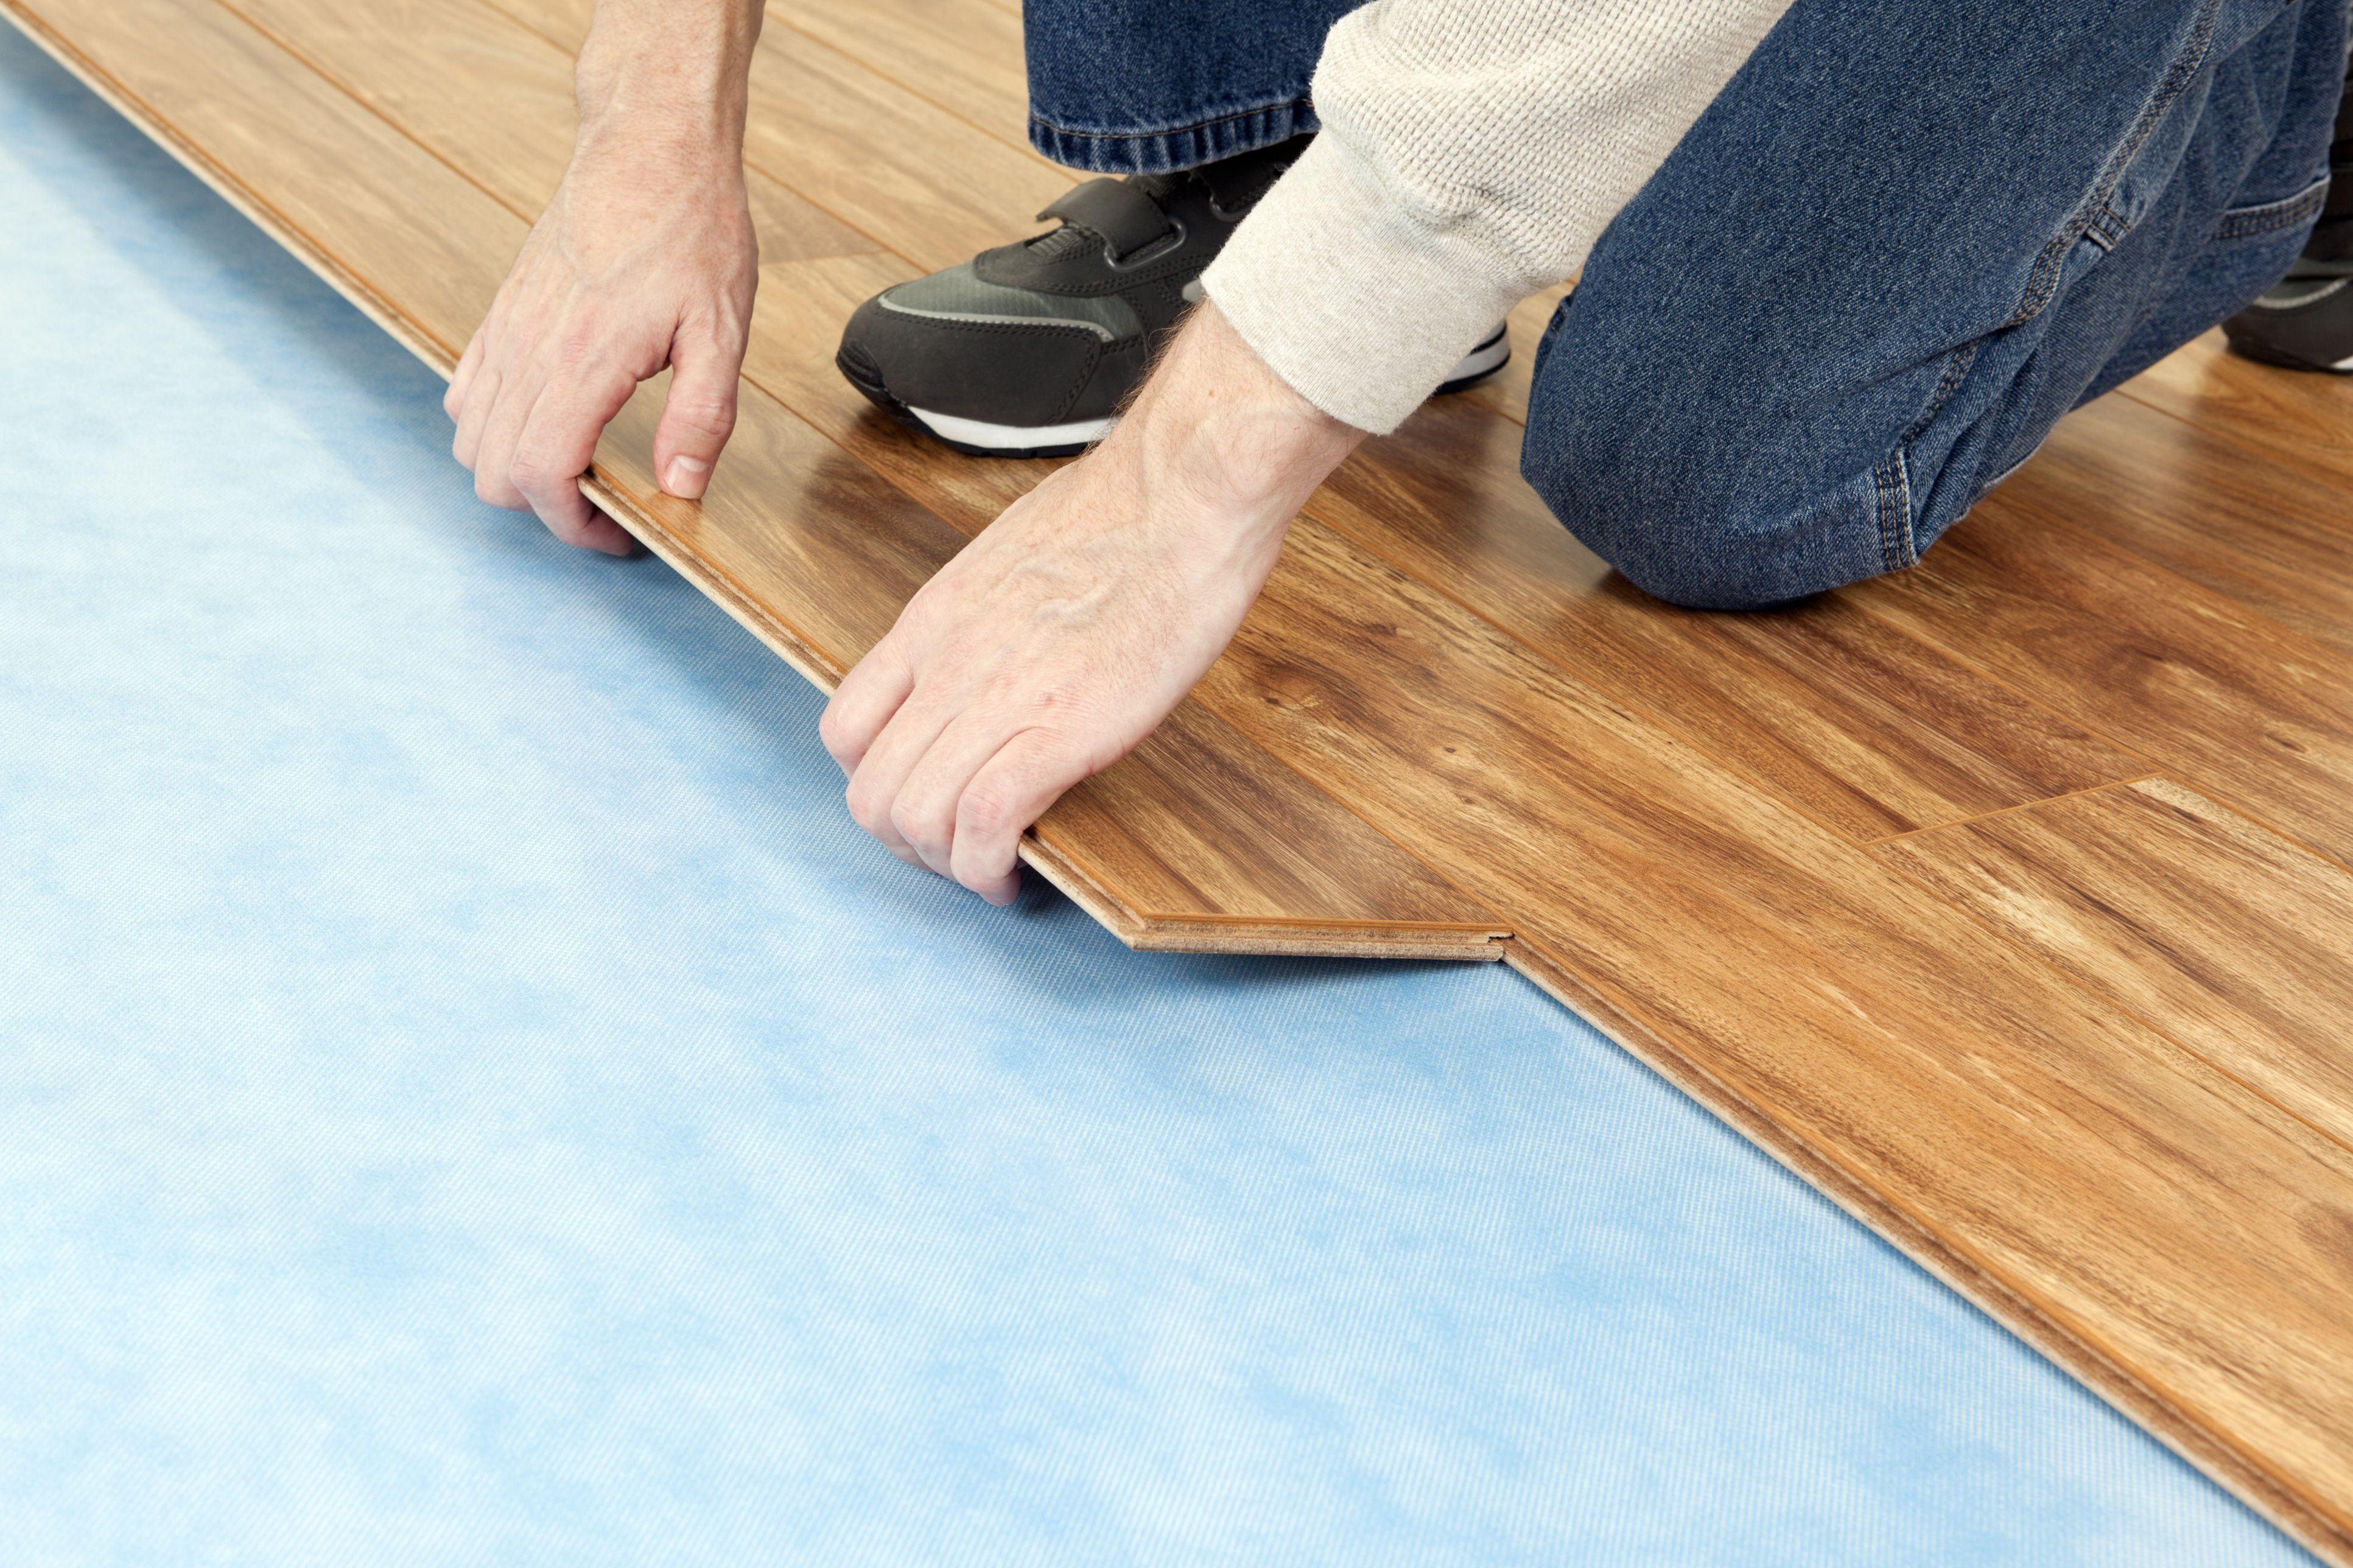 what tools are needed to install hardwood flooring of flooring underlayment the basics intended for new floor installation 185270632 582b722c3df78c6f6af0a8ab